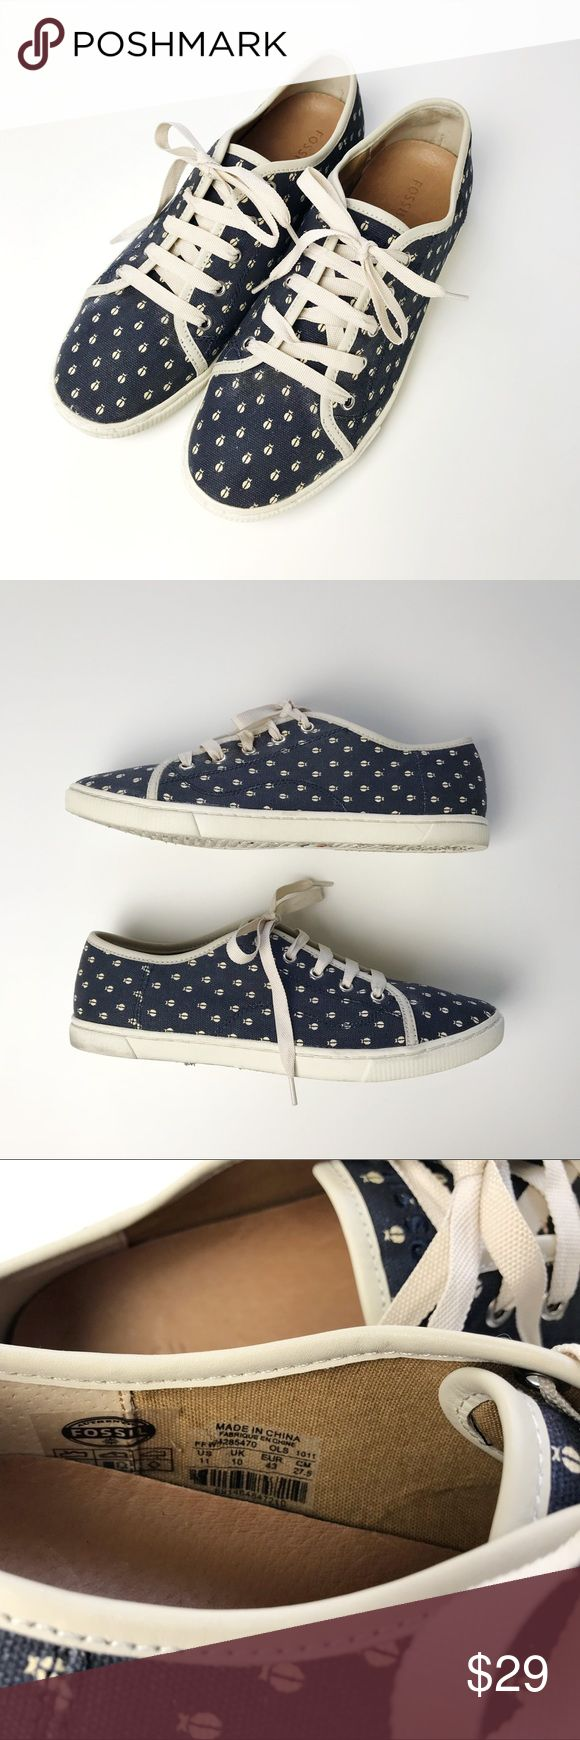 Fossil Blue Ladybug Print Lace Up Sneakers Fossil Blue Ladybug Print Lace Up Sneakers *Size Womens US 11 *Lace up style / Blue body with white ladybug allover prints / Fabric upper  *In great pre-owned condition. Mainly wear on the bottom of shoes. No damages or flaws. *No trade Fossil Shoes Sneakers